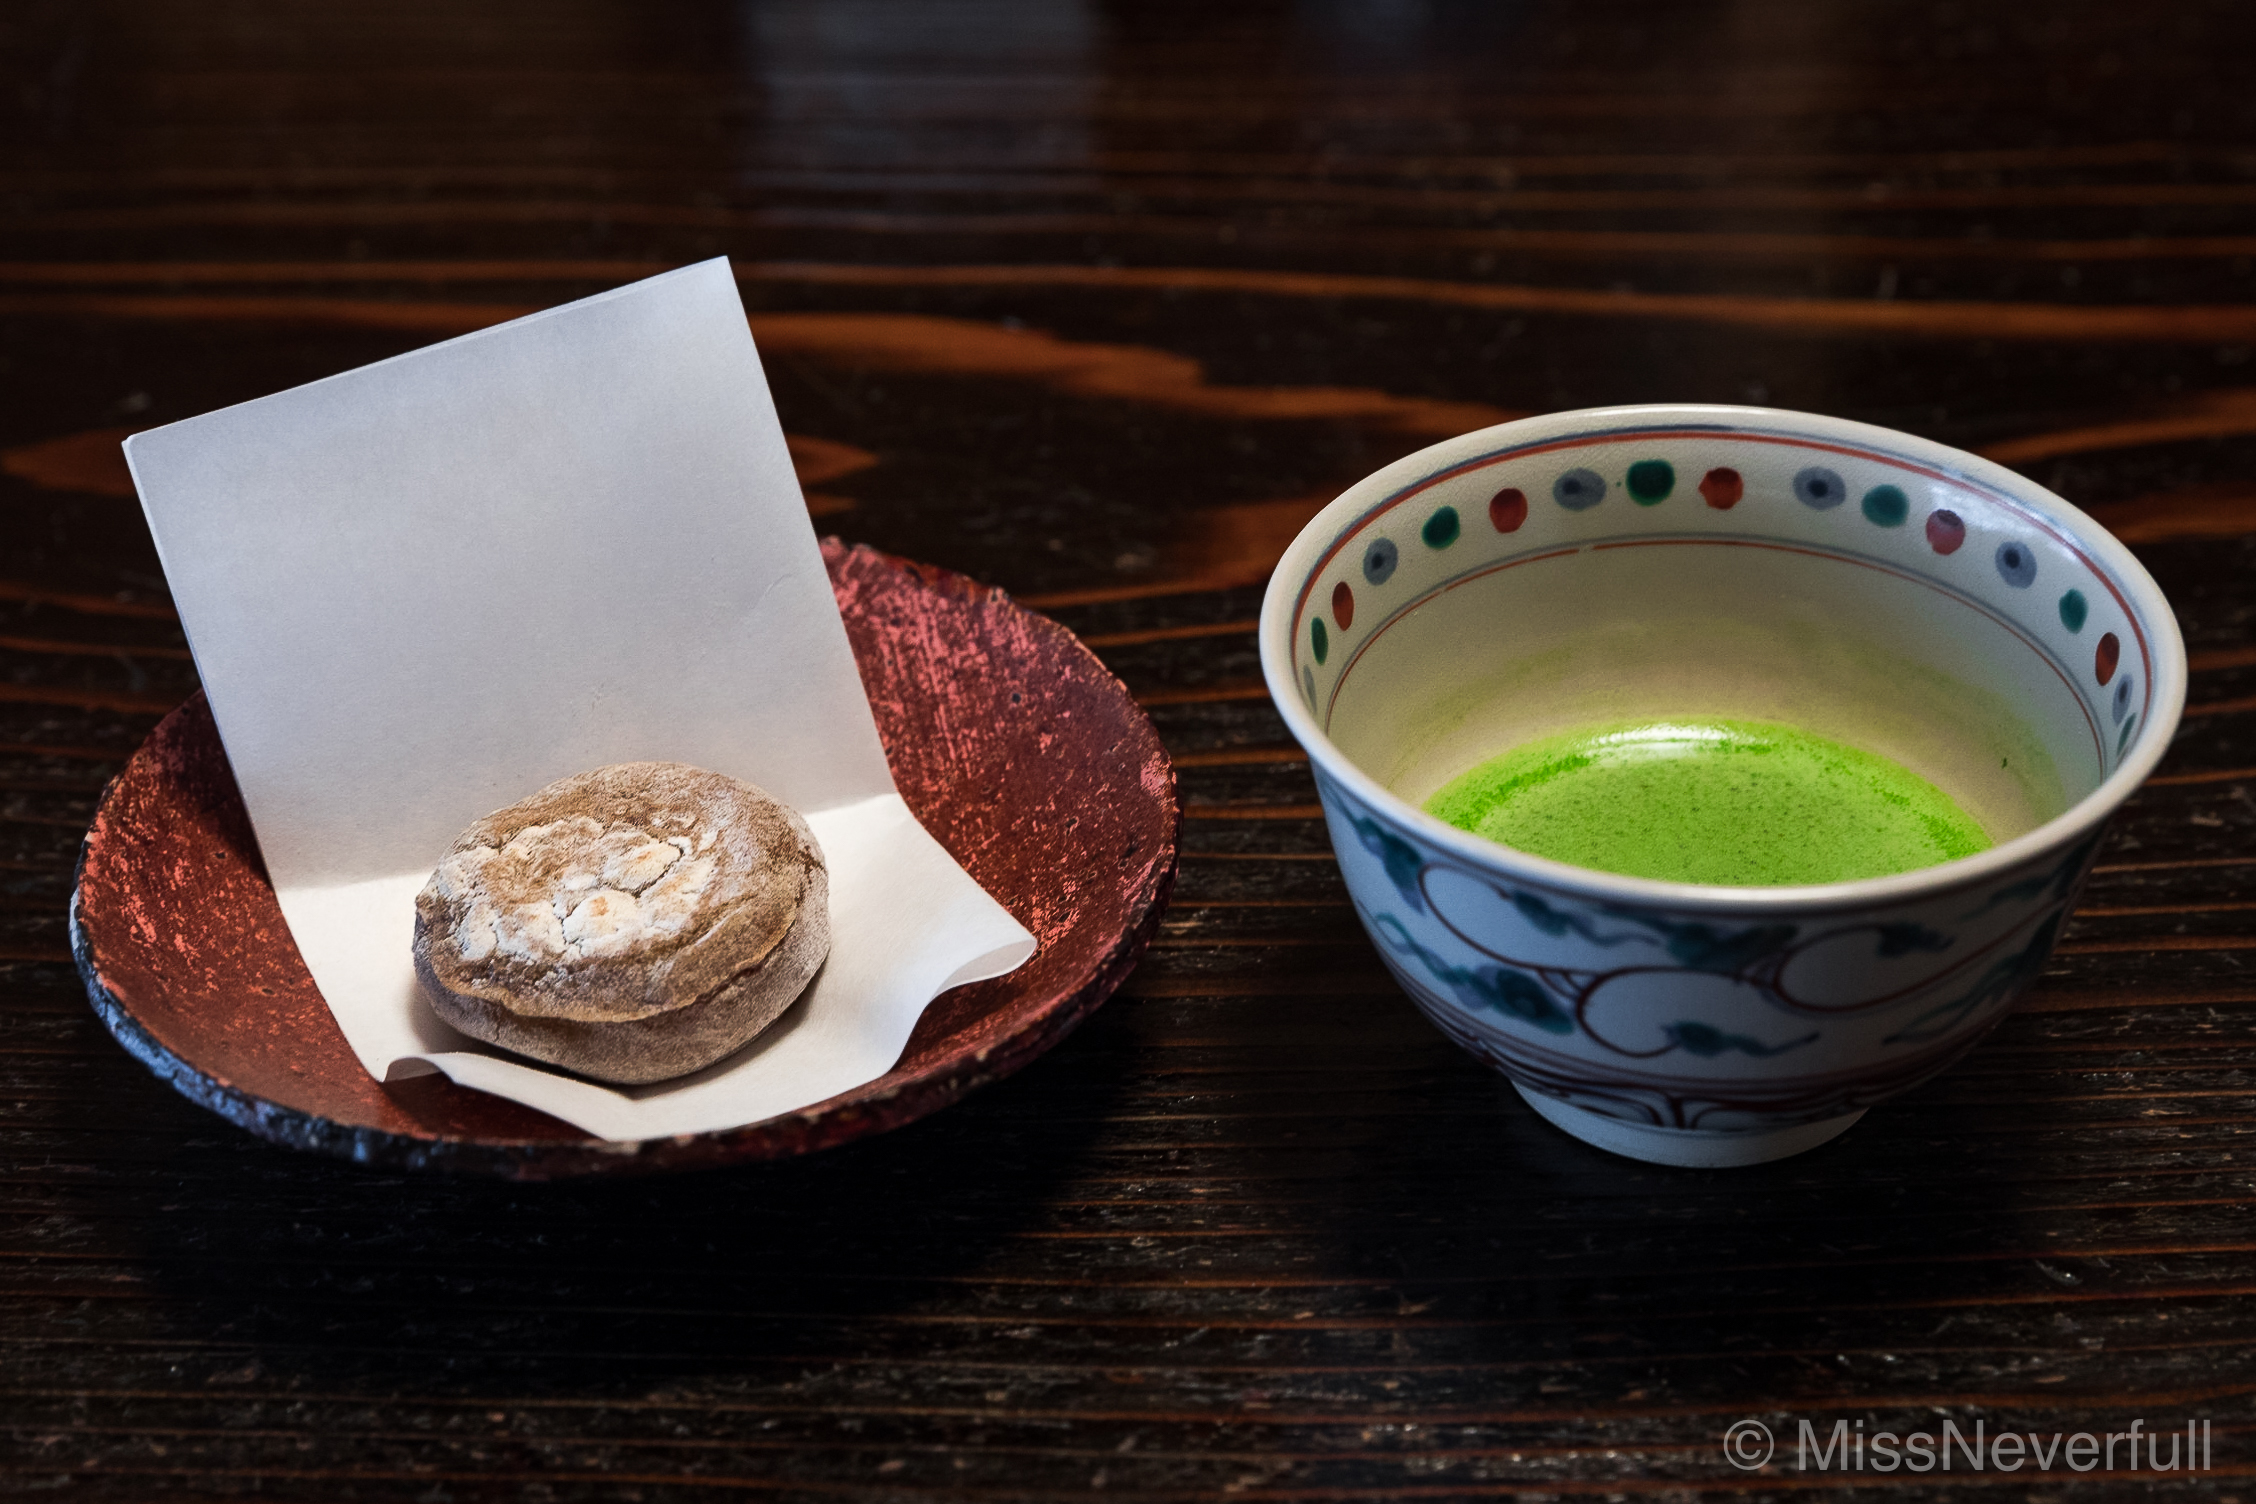 11. Tochi-mochi filled with red bean puree, side by matcha